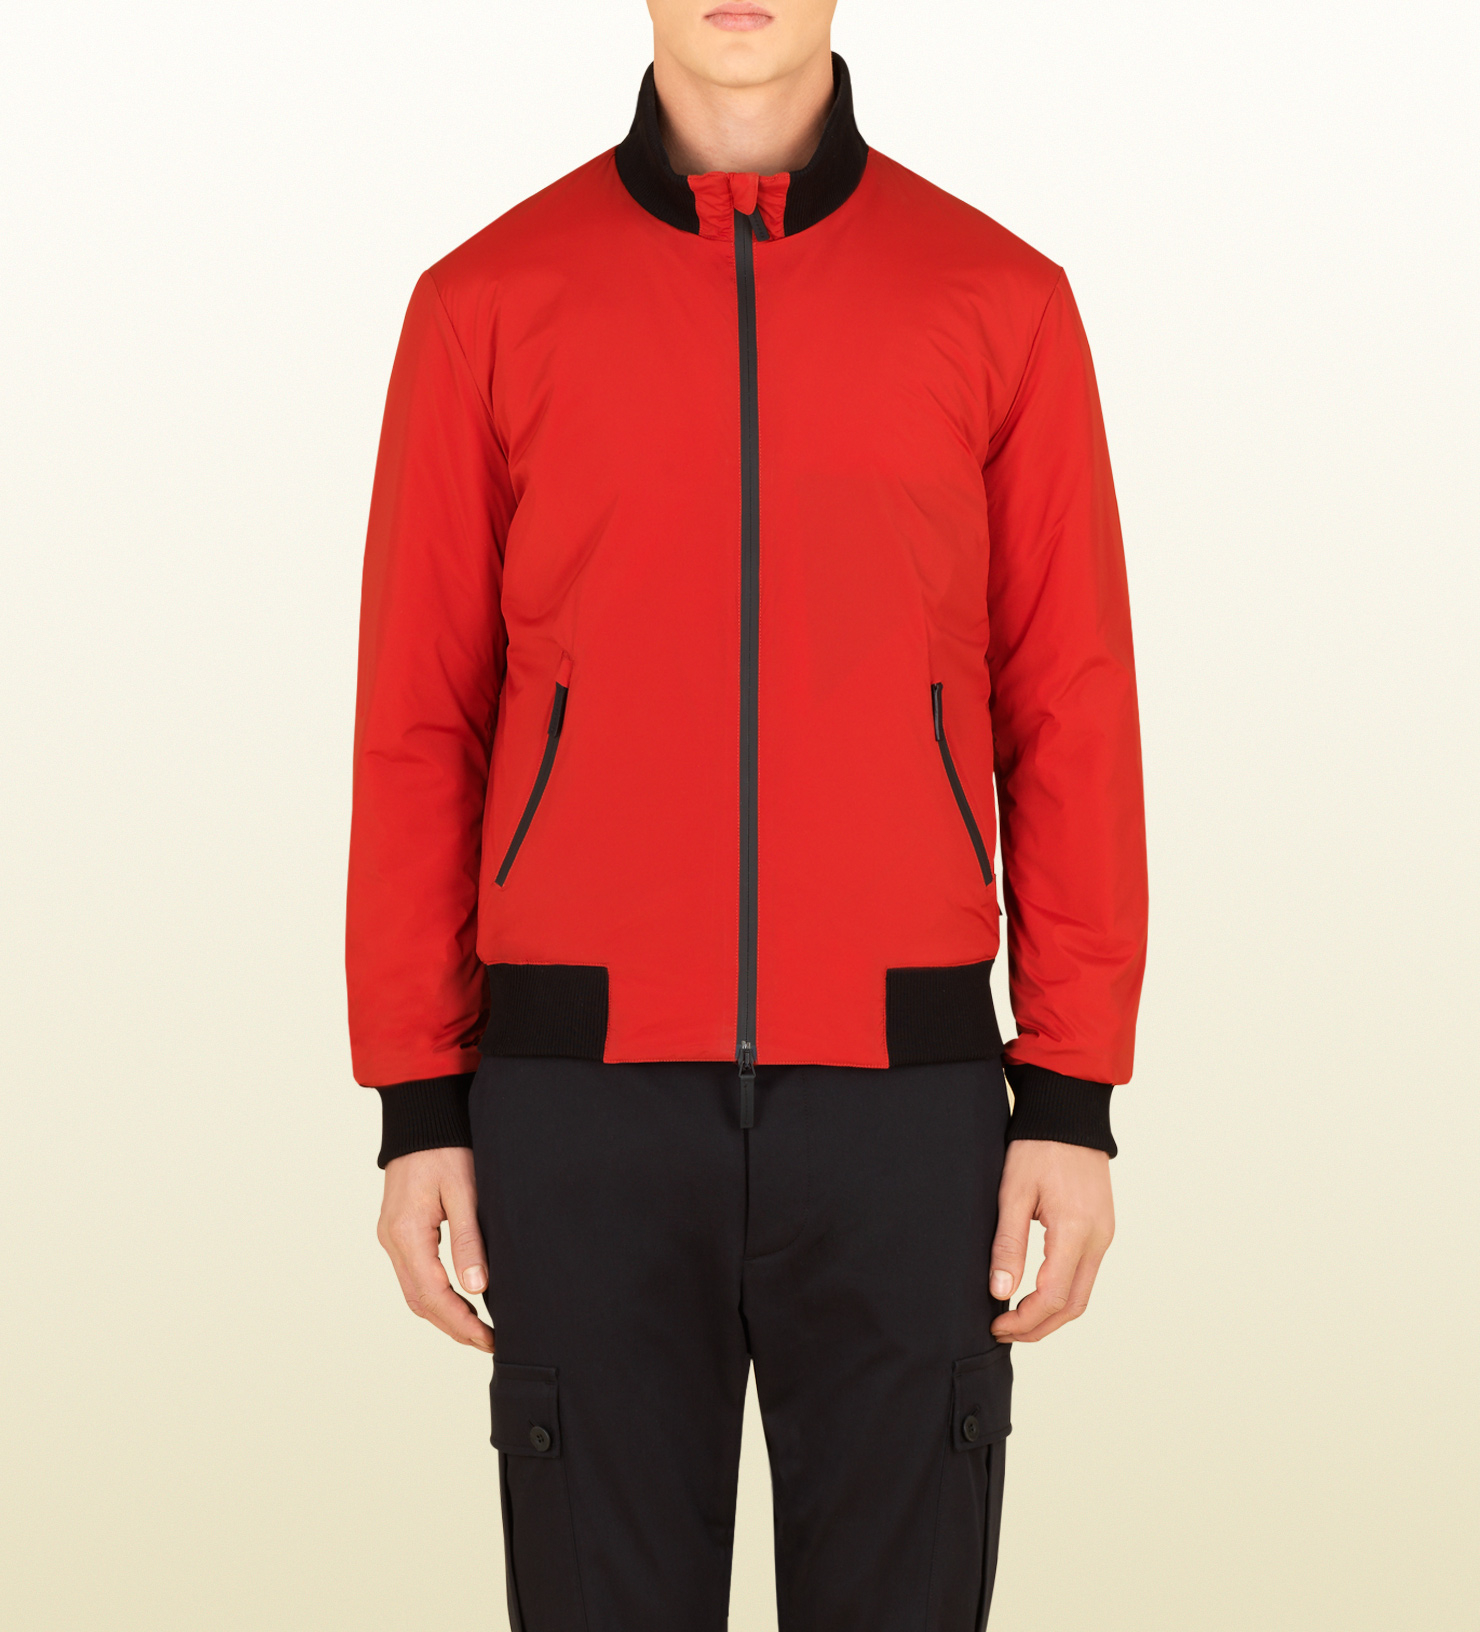 cc36e903d Gucci Mens Red Nylon Padded Jacket From Viaggio Collection in Red ...